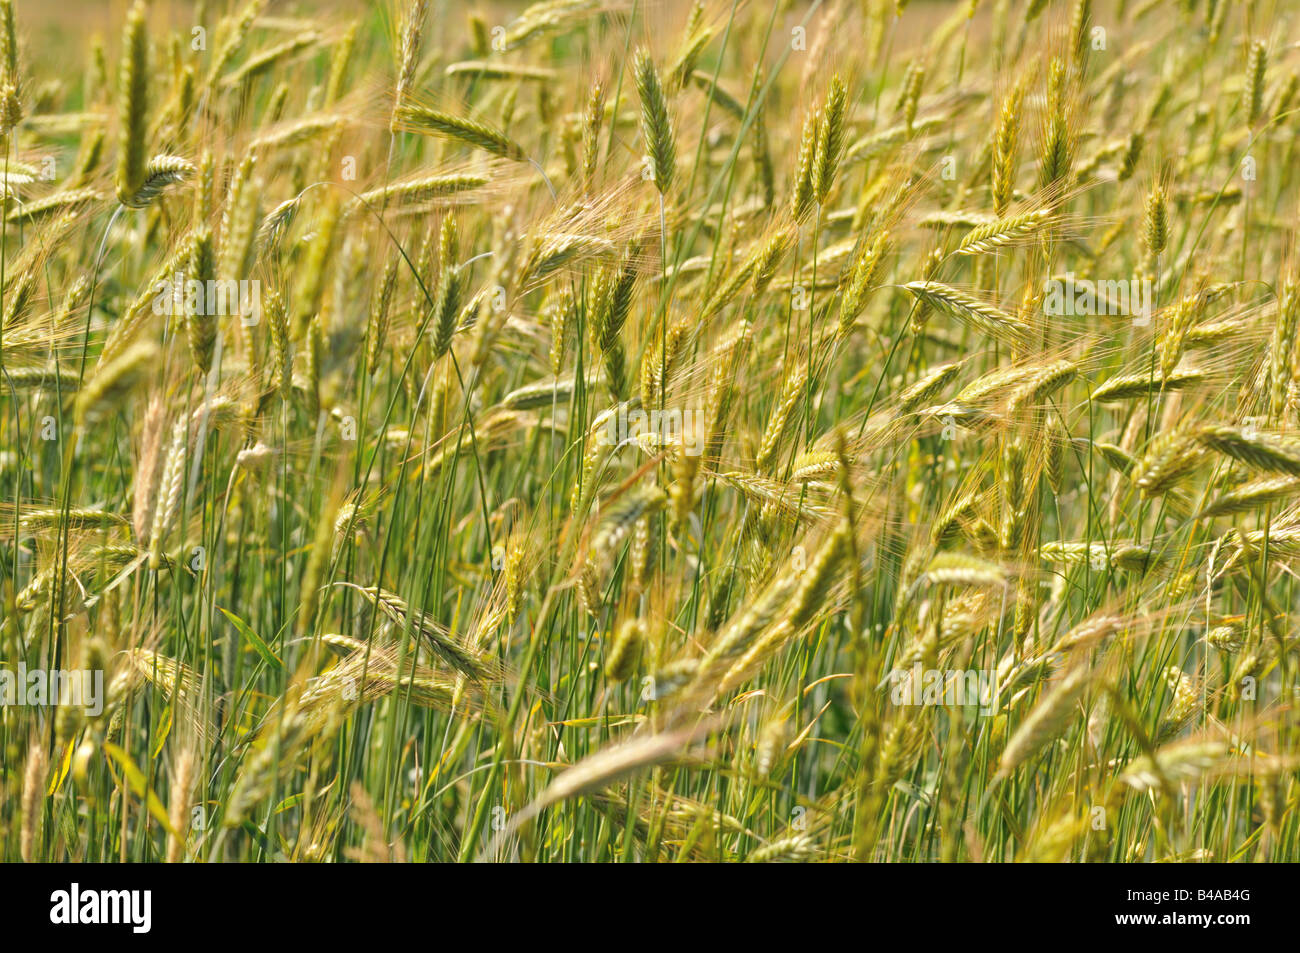 Crops. - Stock Image